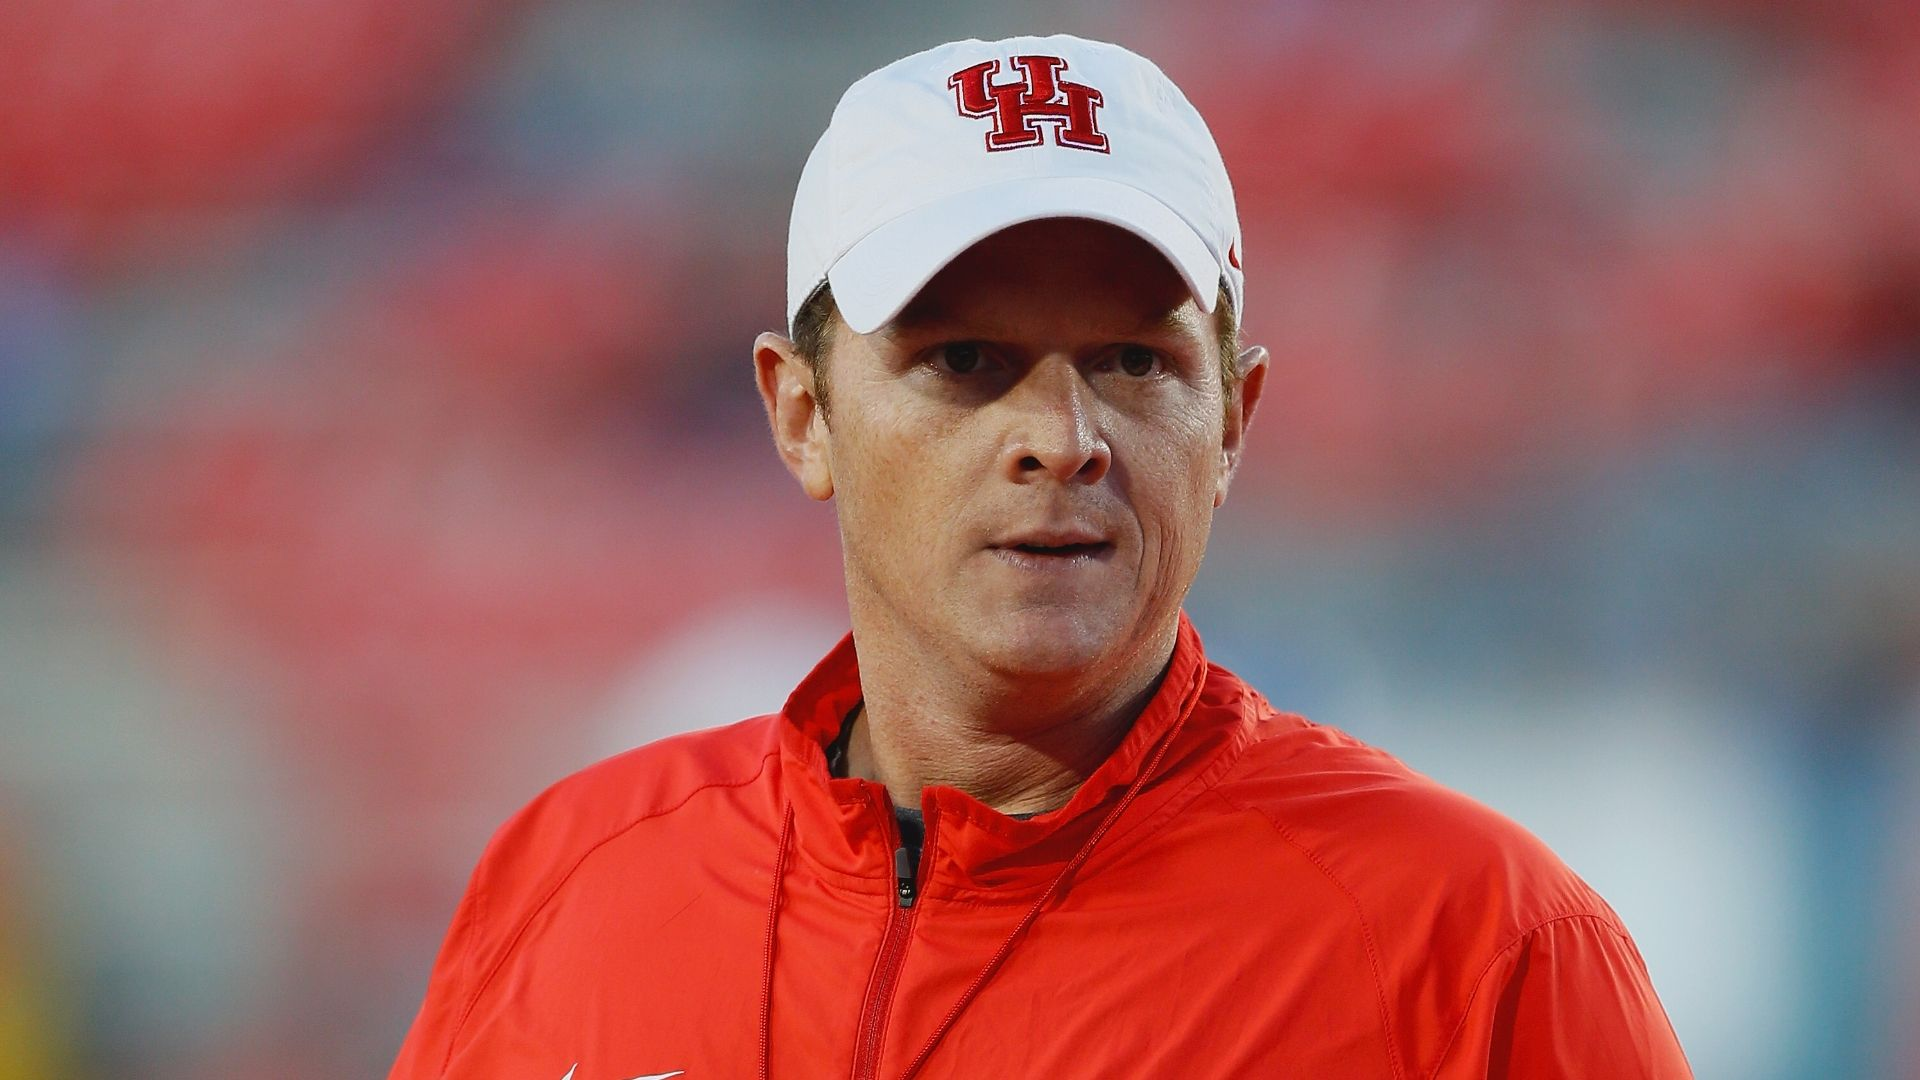 Houston hopes Applewhite can continue Cougars' success